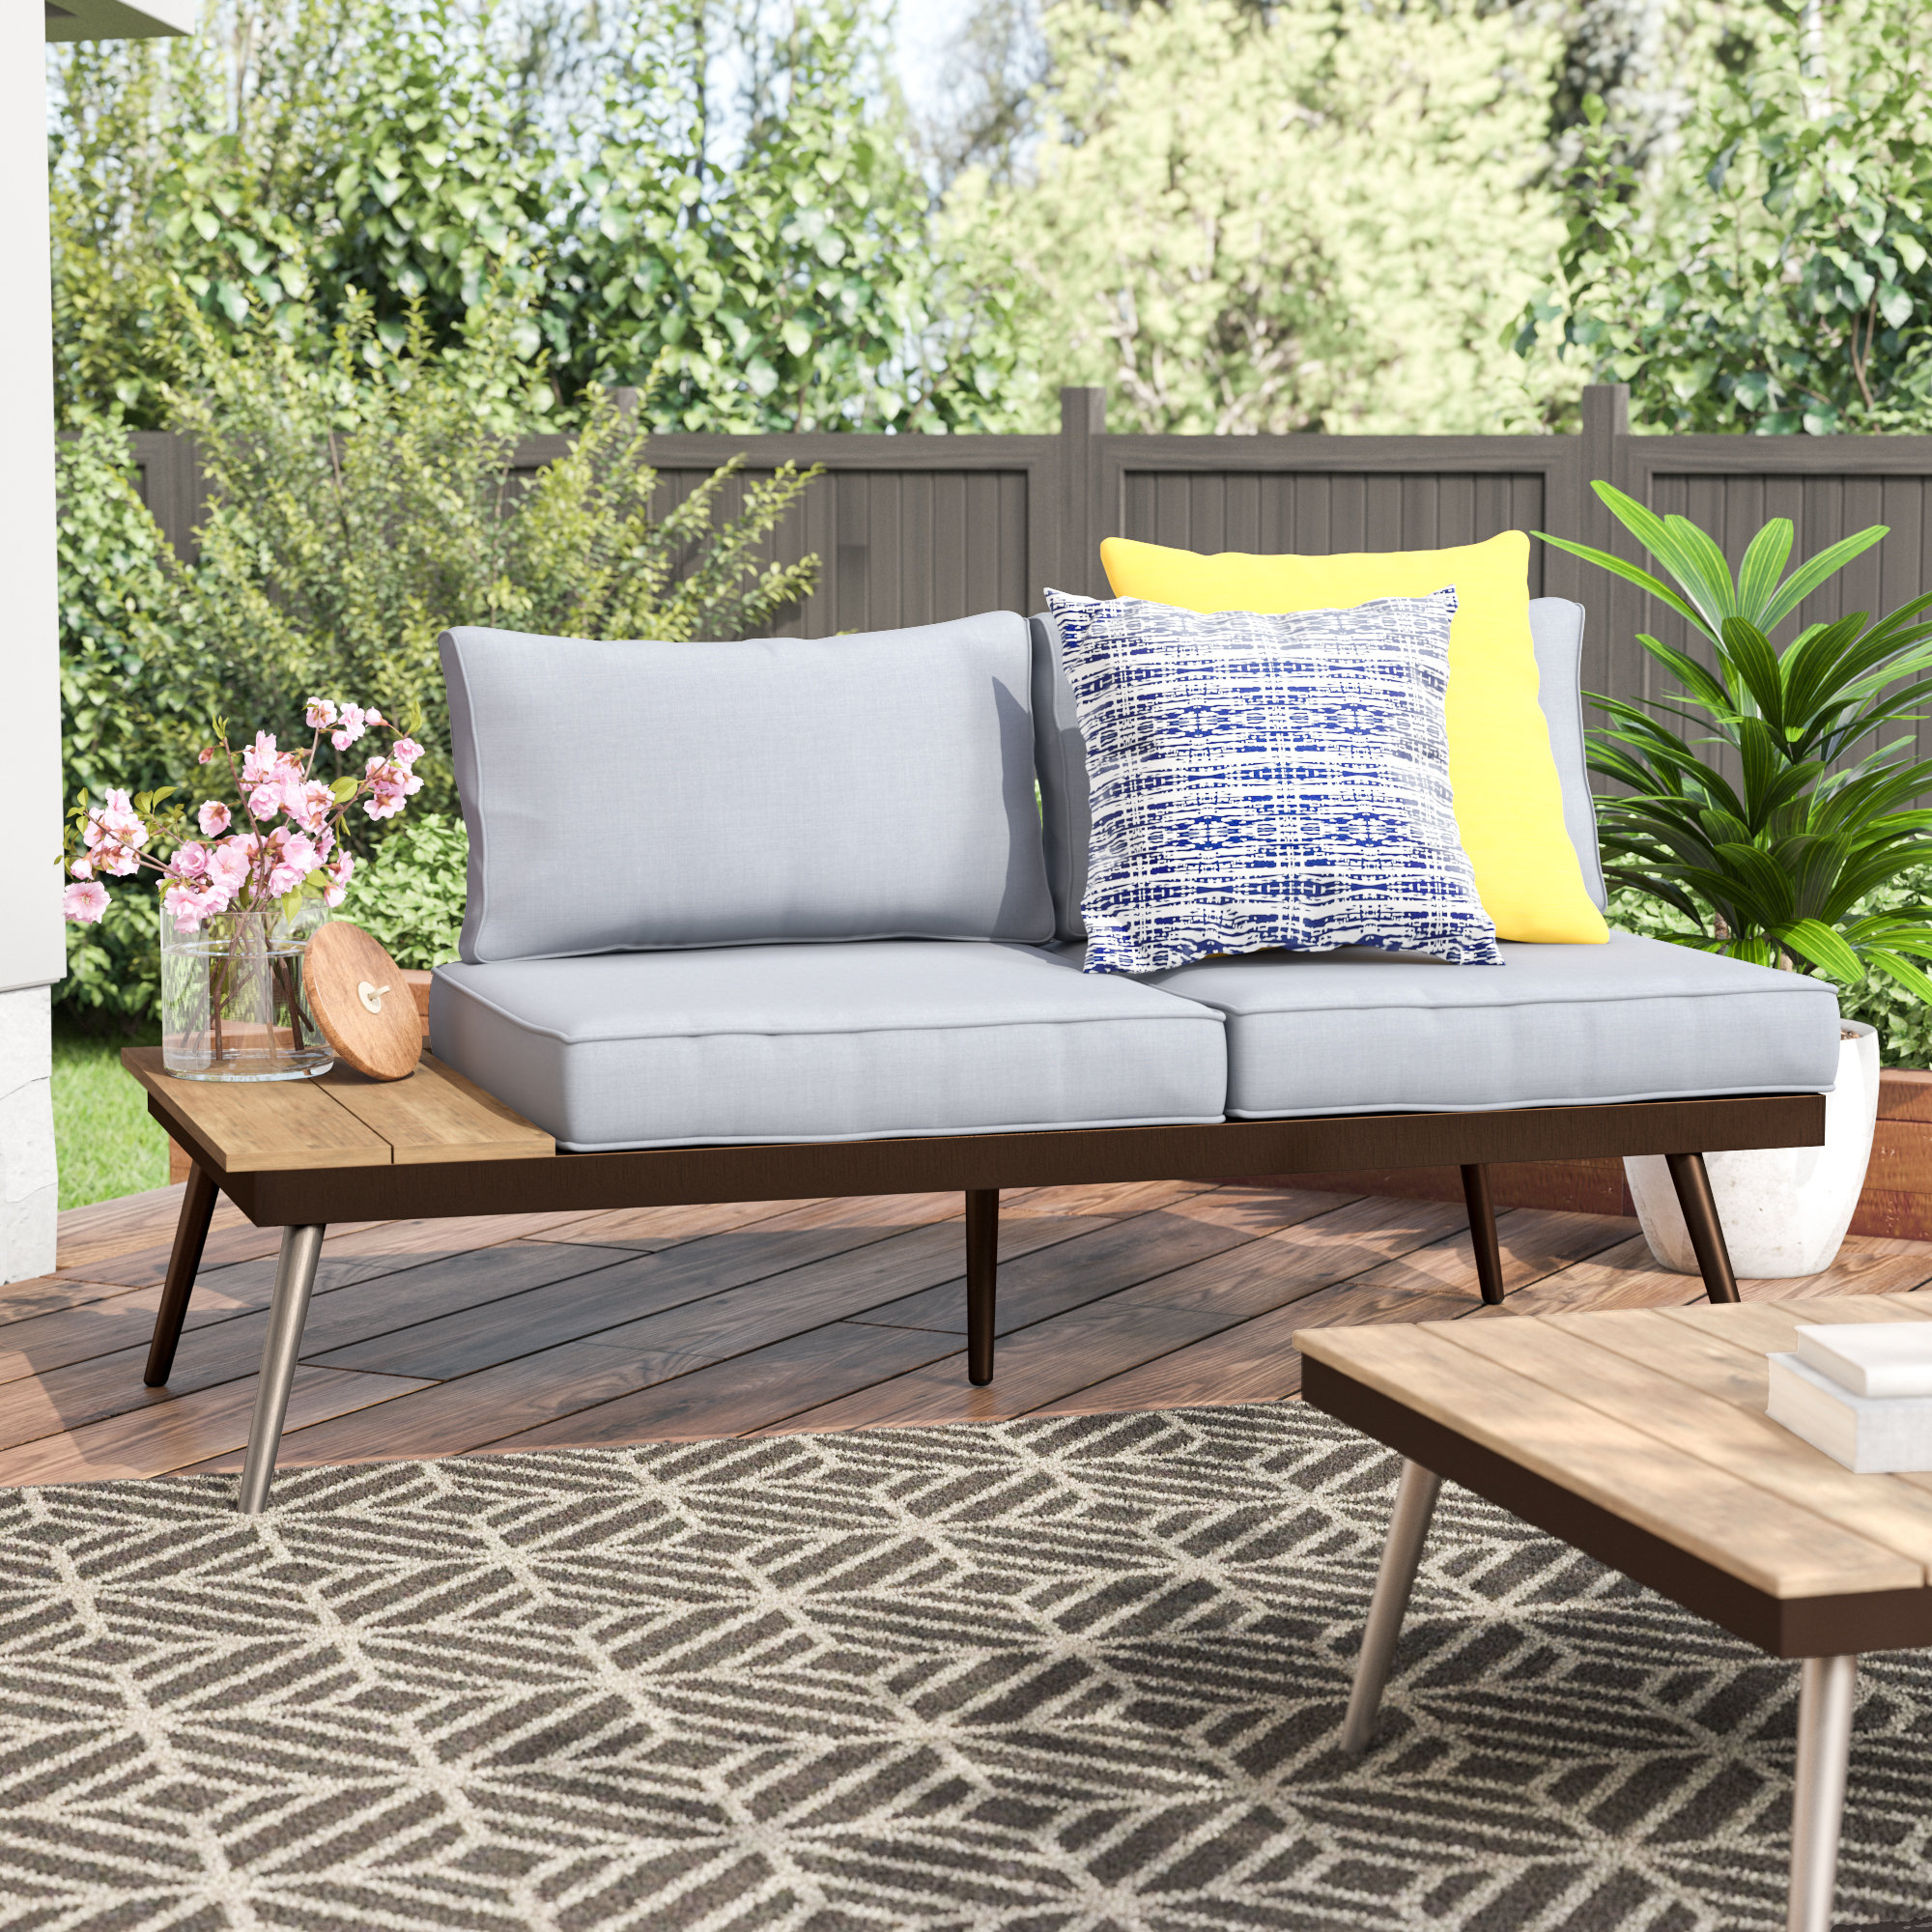 Popular Bullock Outdoor Wooden Loveseats With Cushions In Bendale Contemporary Loveseat With Cushion (View 13 of 20)